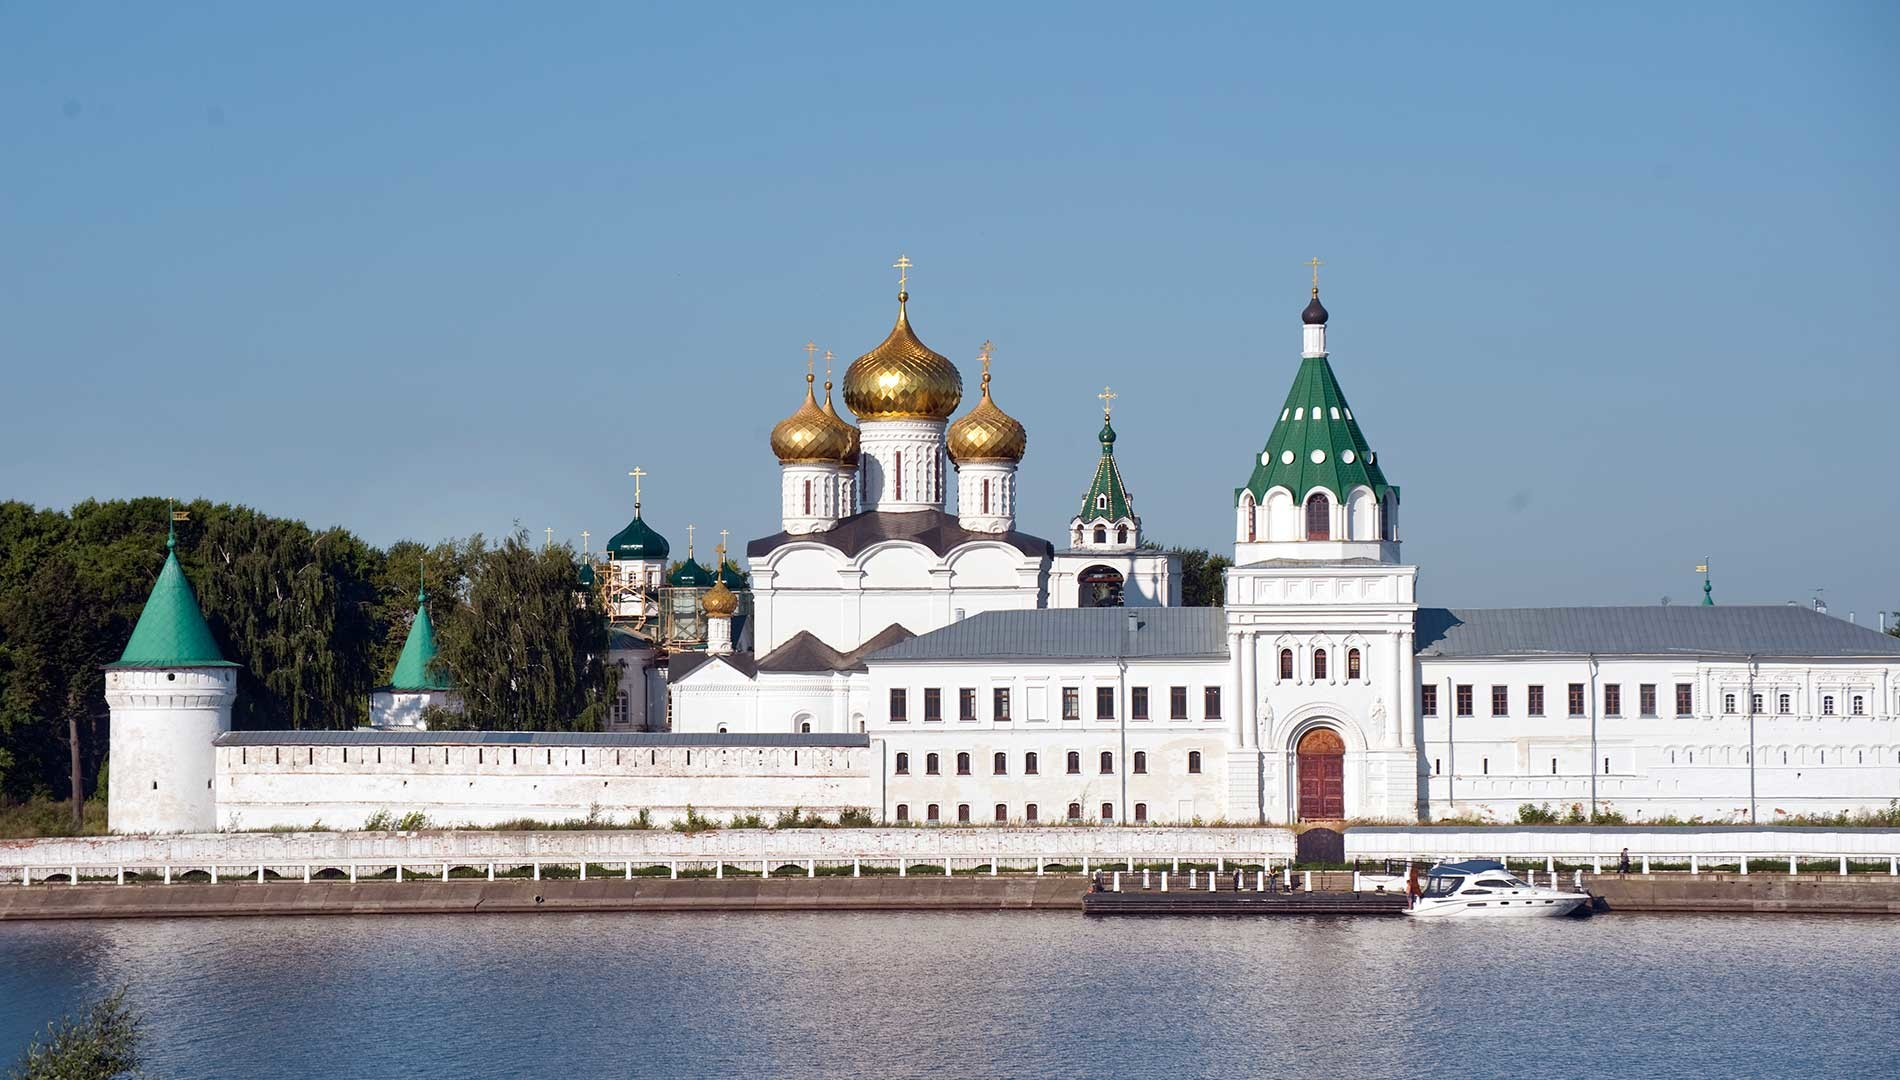 Trinity-Ipatiev Monastery, east view across Kostroma River. From left: Water Tower; Cathedral of Nativity of the Virgin; Trinity Cathedral; bell tower; Archbishop's Cloisters with Gate Church of Sts. Chrysanthus & Daria. Aug. 13, 2017.